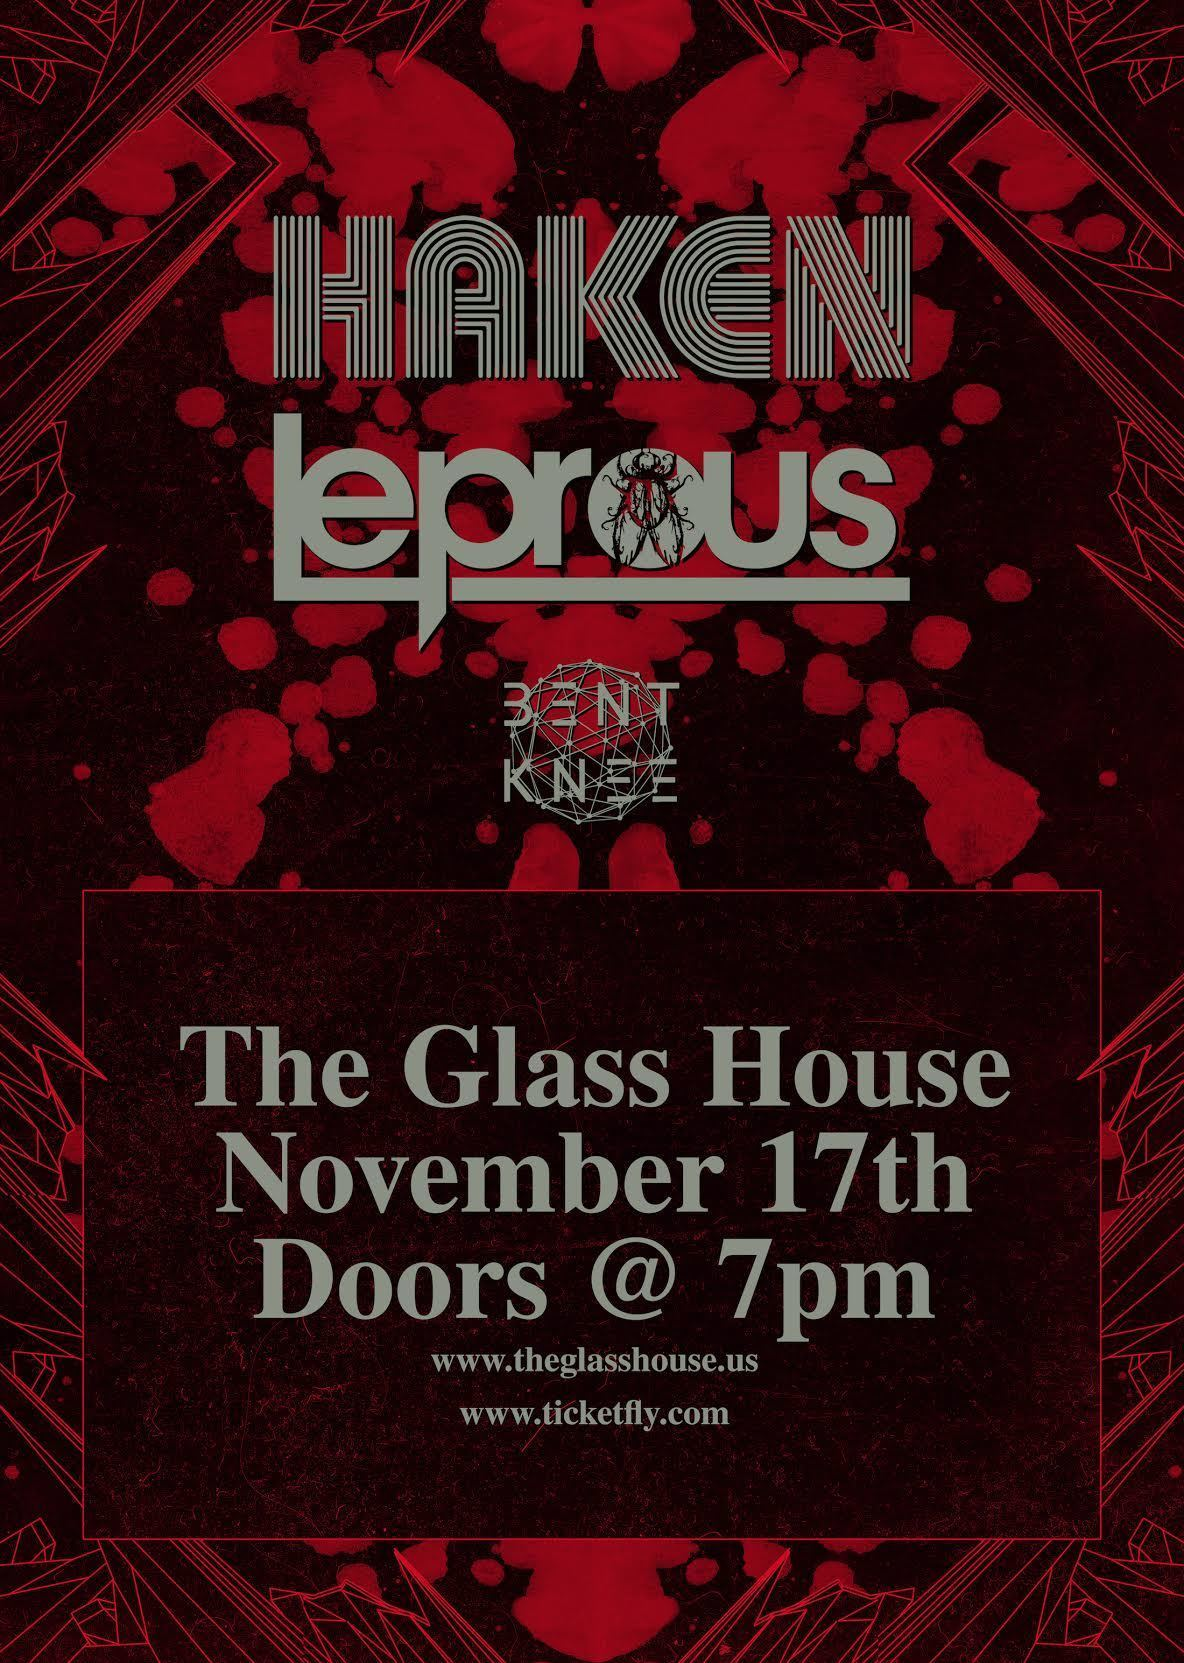 image for event Haken, Leprous, Watsky, and Bent Knee